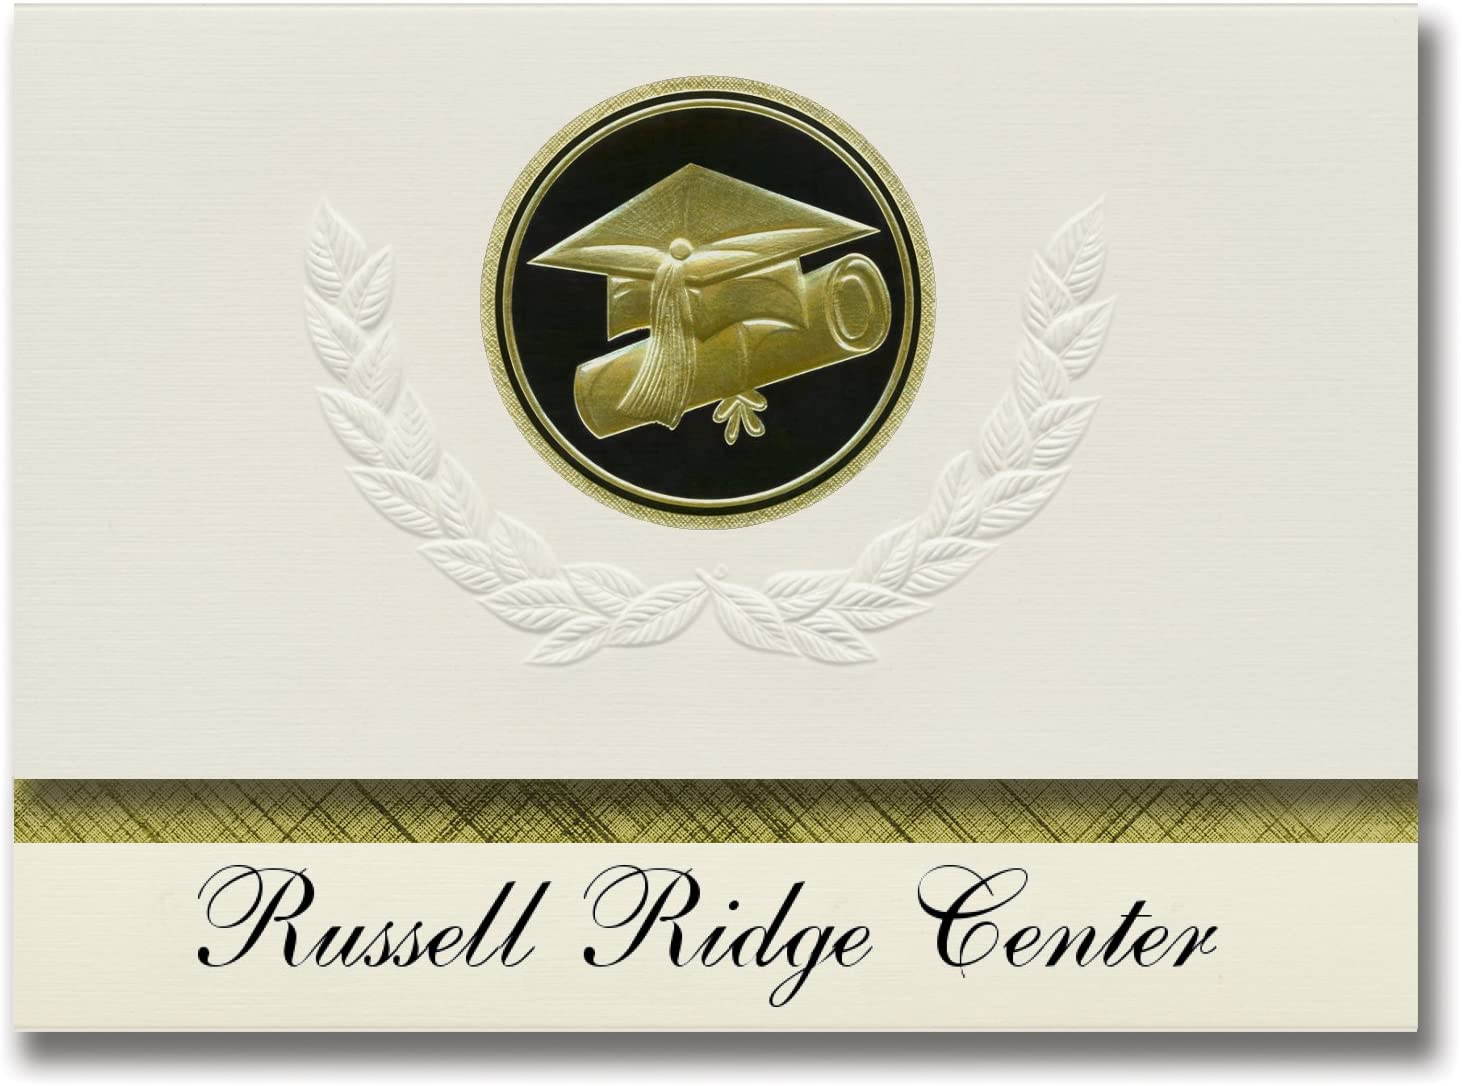 Signature Announcements Russell Ridge Center (Maple Valley, WA) Graduation Announcements, Presidential style, Elite package of 25 Cap & Diploma Seal Black & Gold